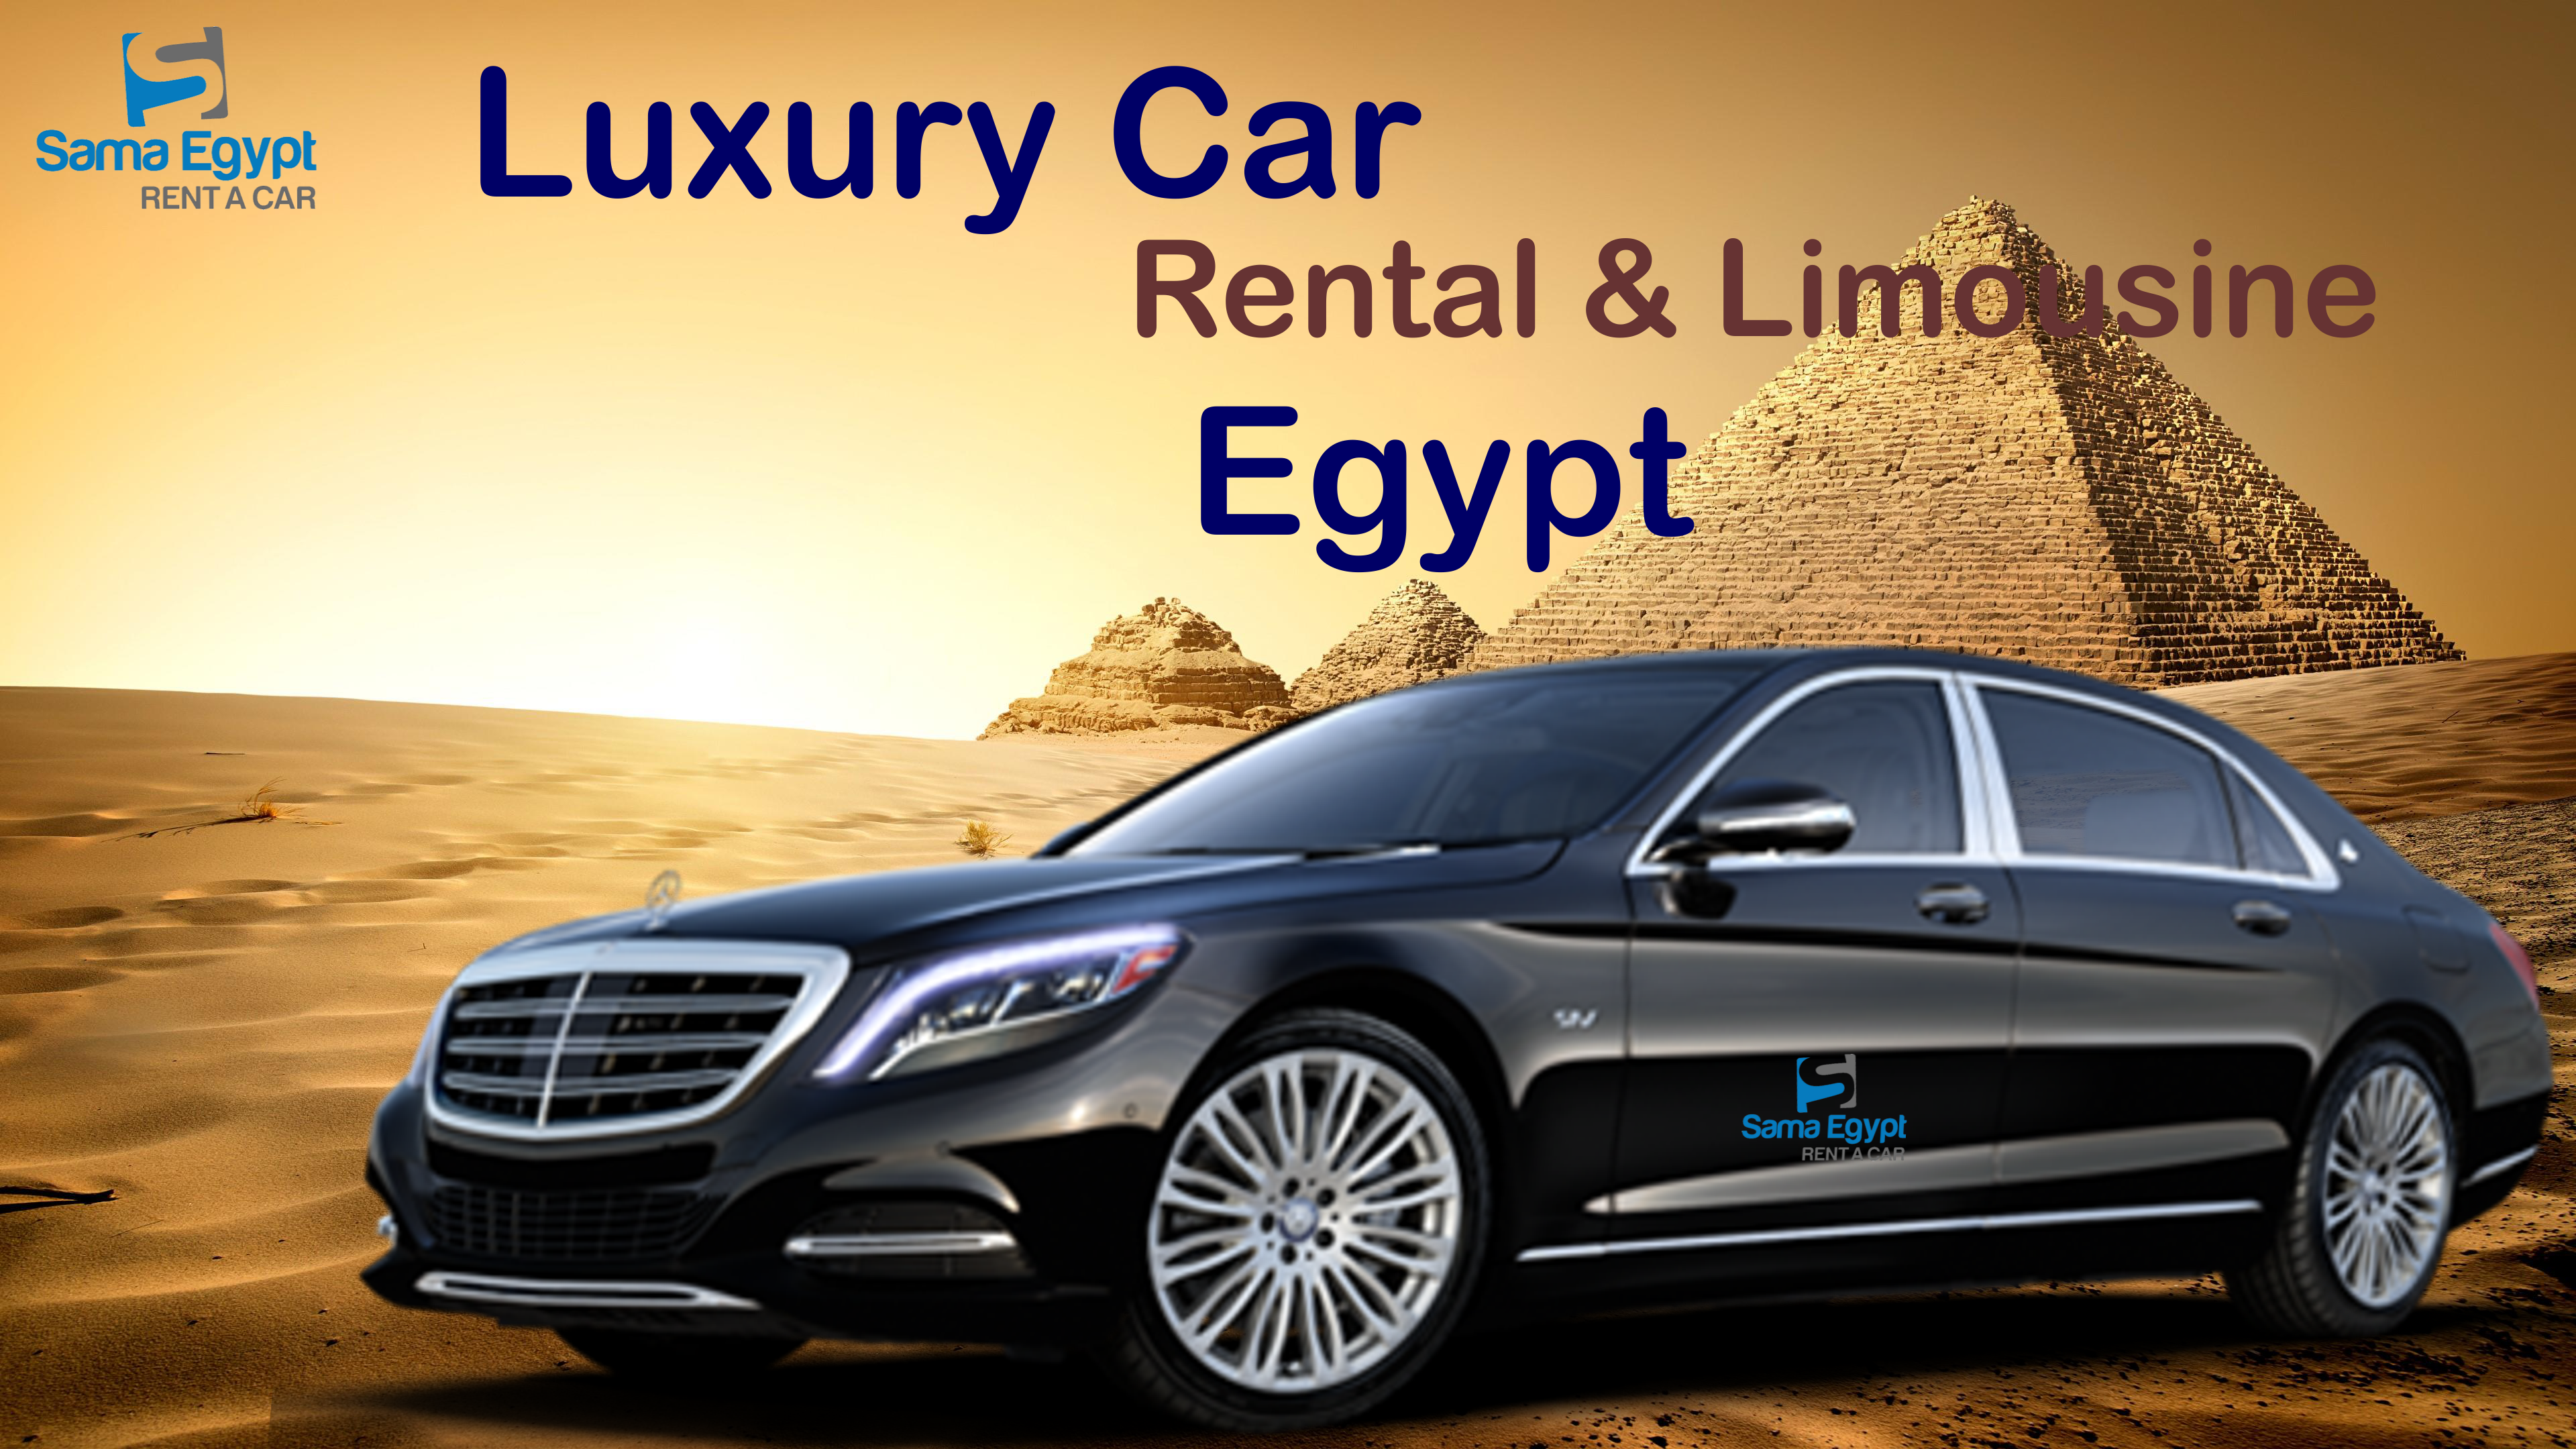 Luxury Car Rental Limousine Save Up To 20 Booking Now 20 102 77 22 4 22 20 12 00 77 68 77 Sama Egy Car Rental Limousine Car Luxury Car Rental